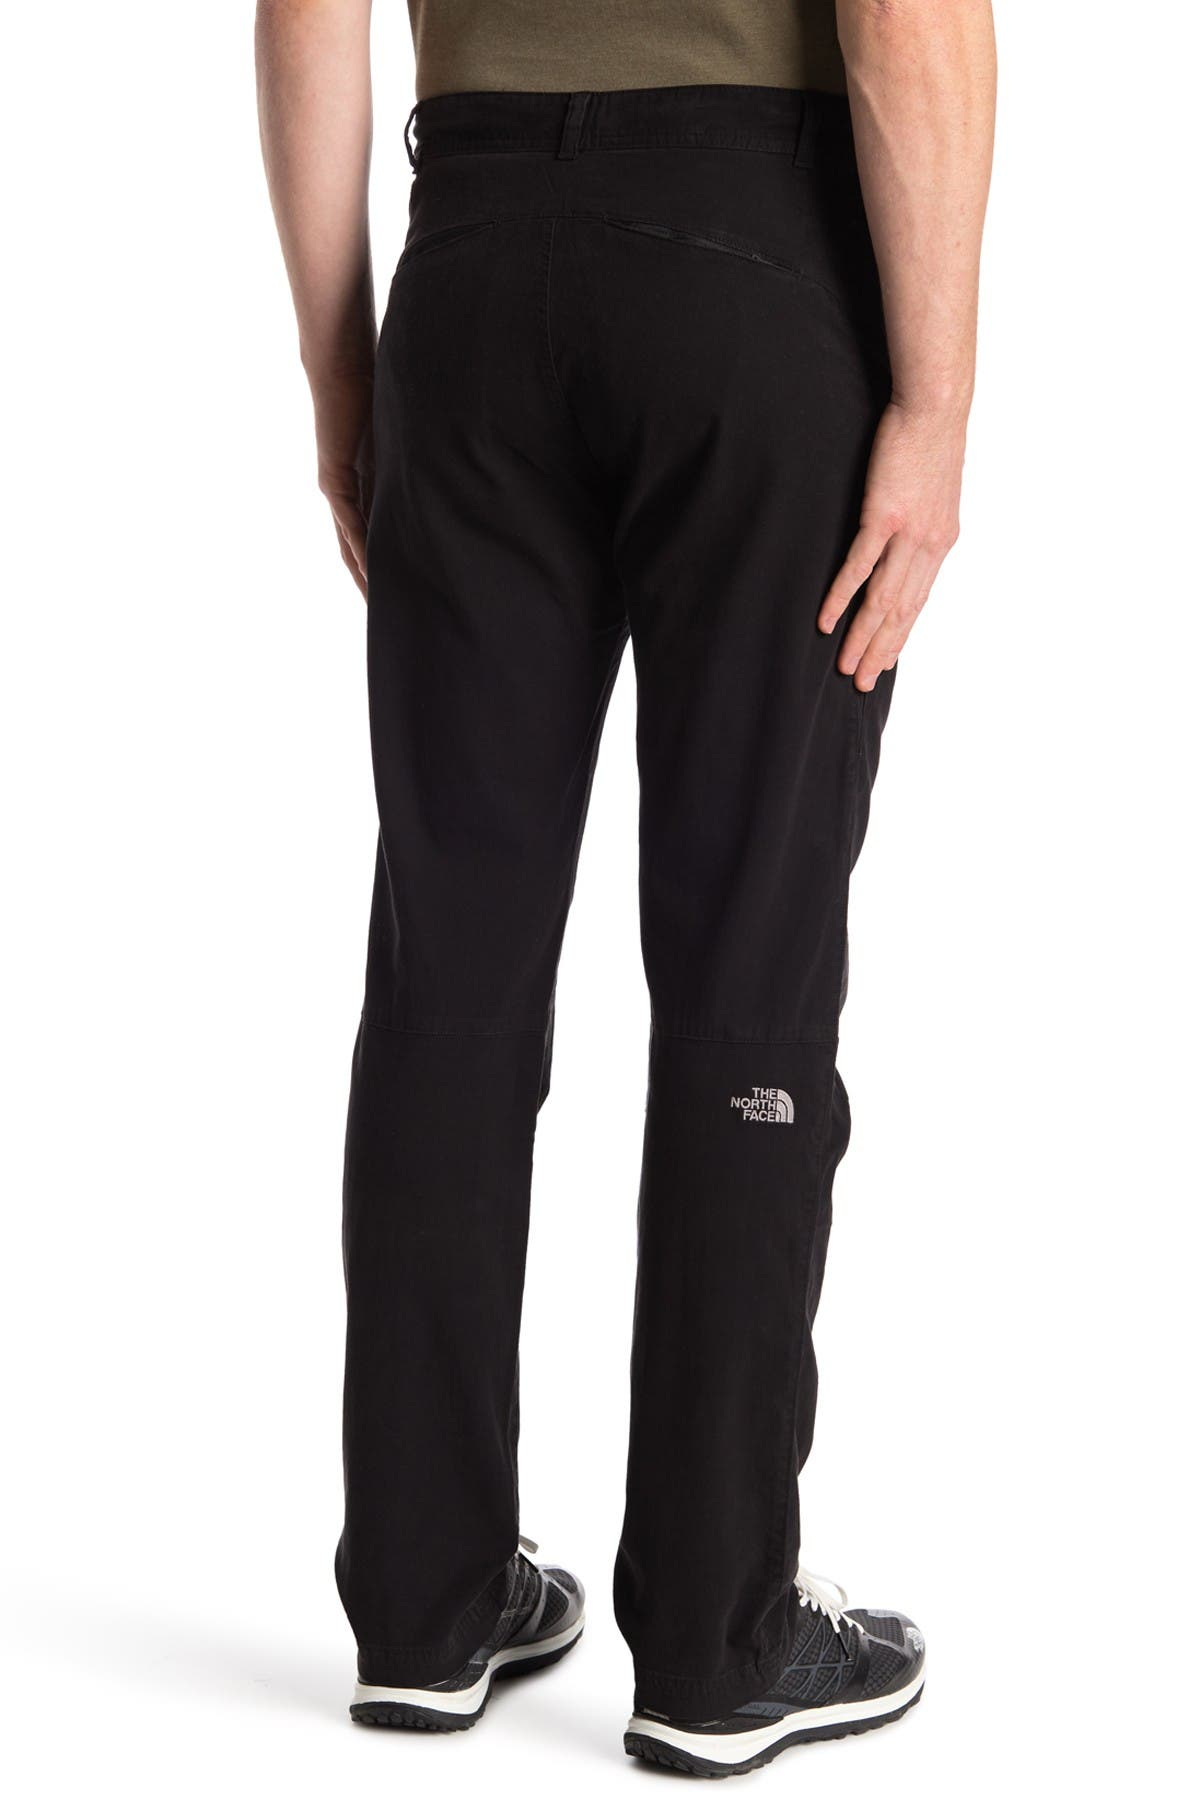 Image of The North Face North Dome Climbing Pants